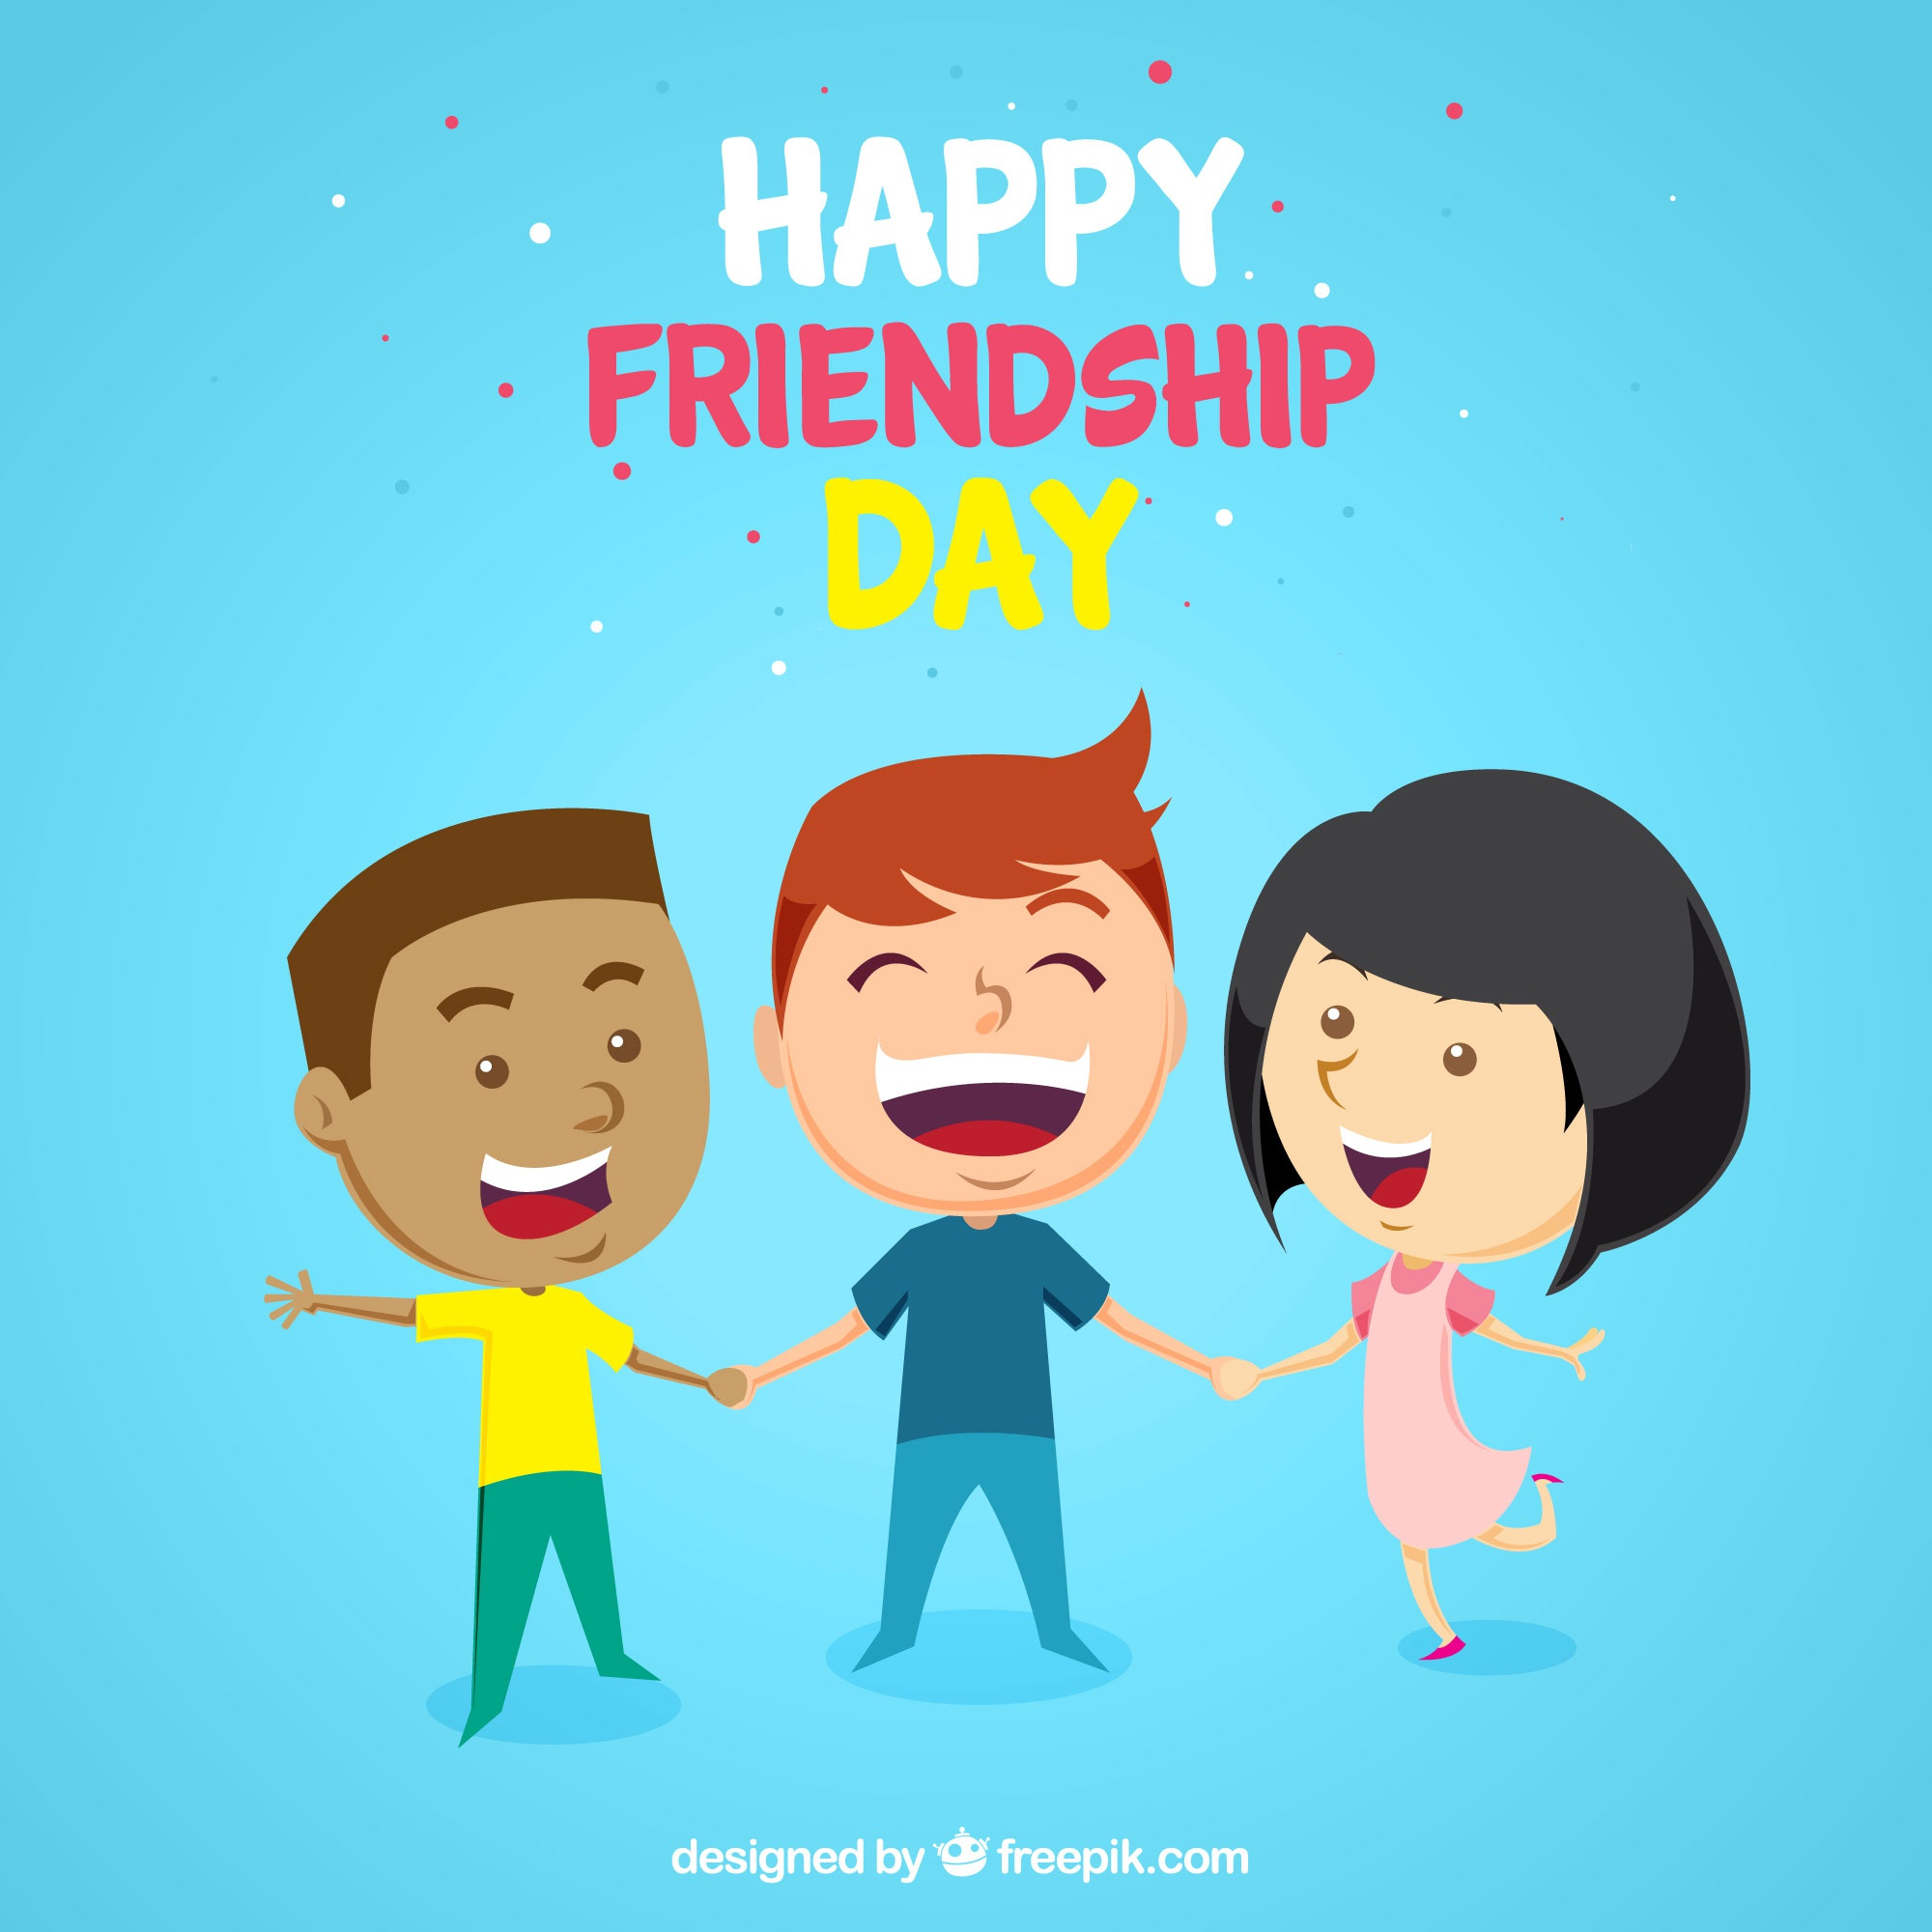 Friendship day background with three happy friends